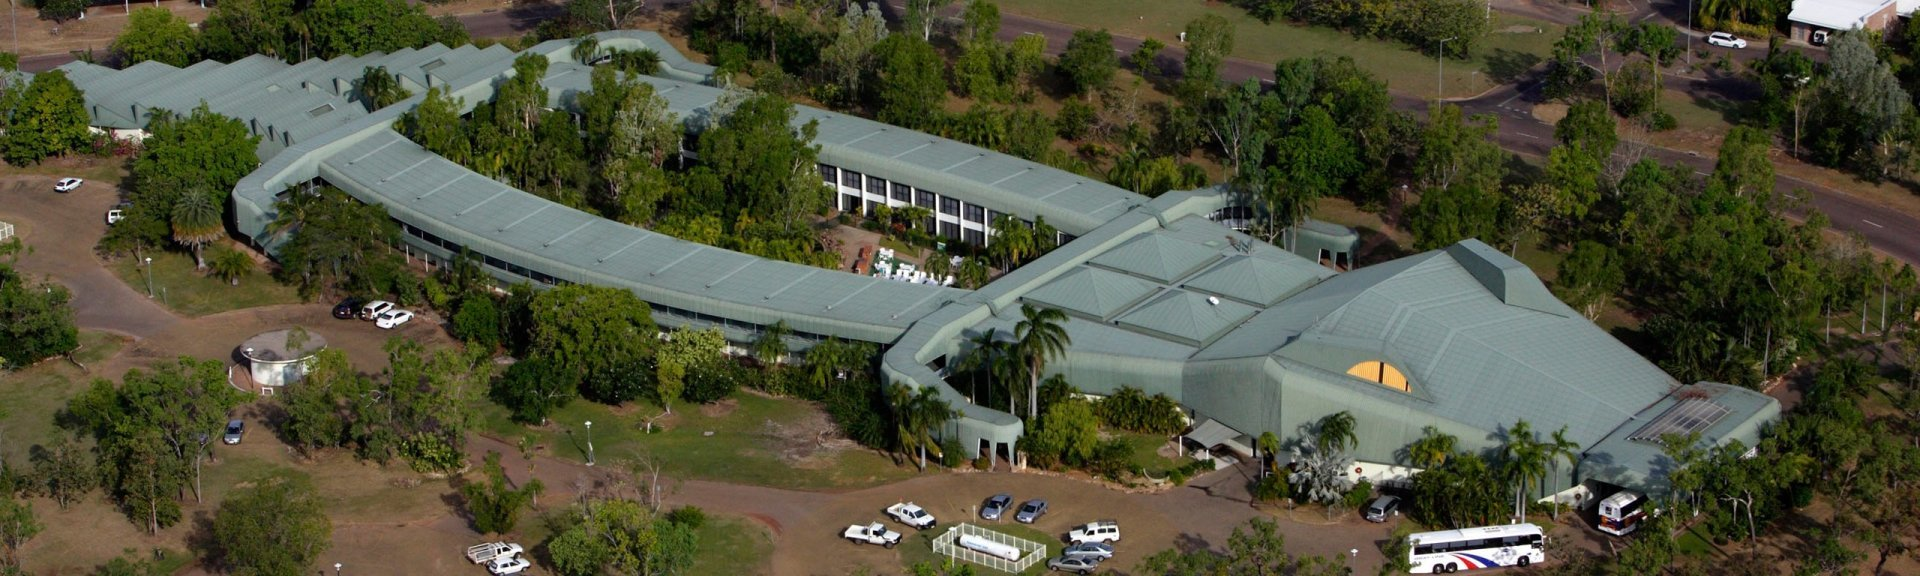 Aerial view of Mercure Kakadu Crocodile Hotel